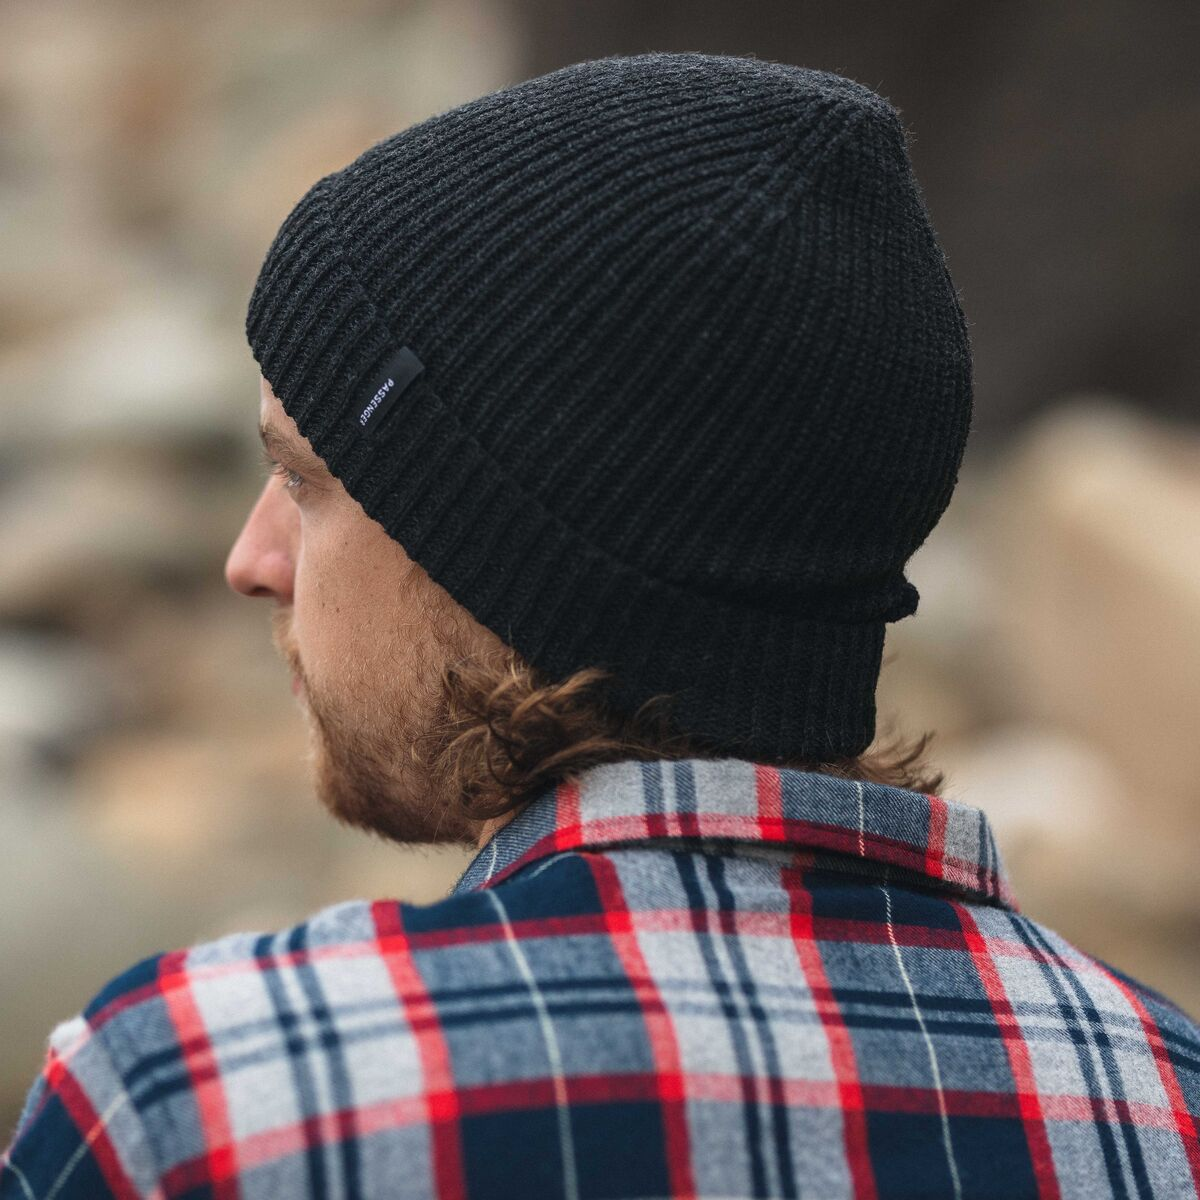 Compass Beanie - Charcoal image 5